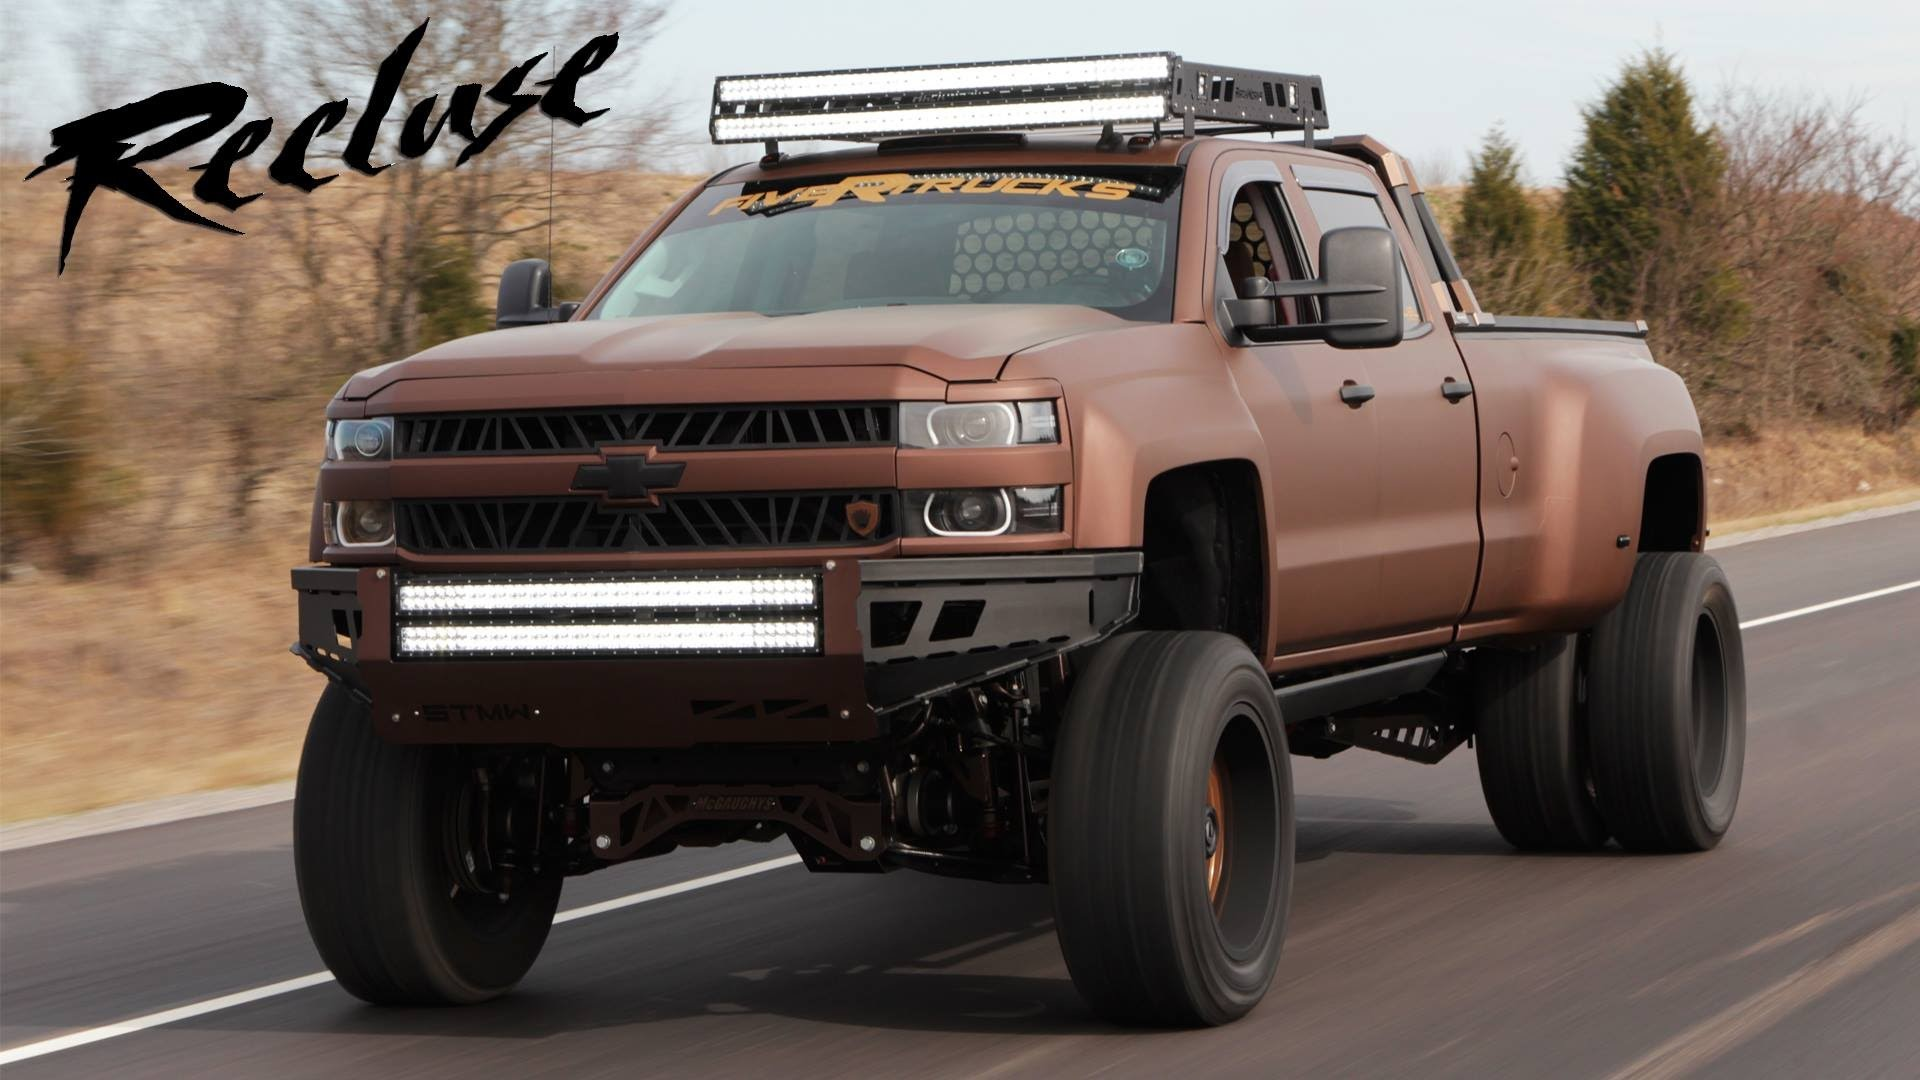 Lifted Duramax Wallpaper 43 images 1920x1080